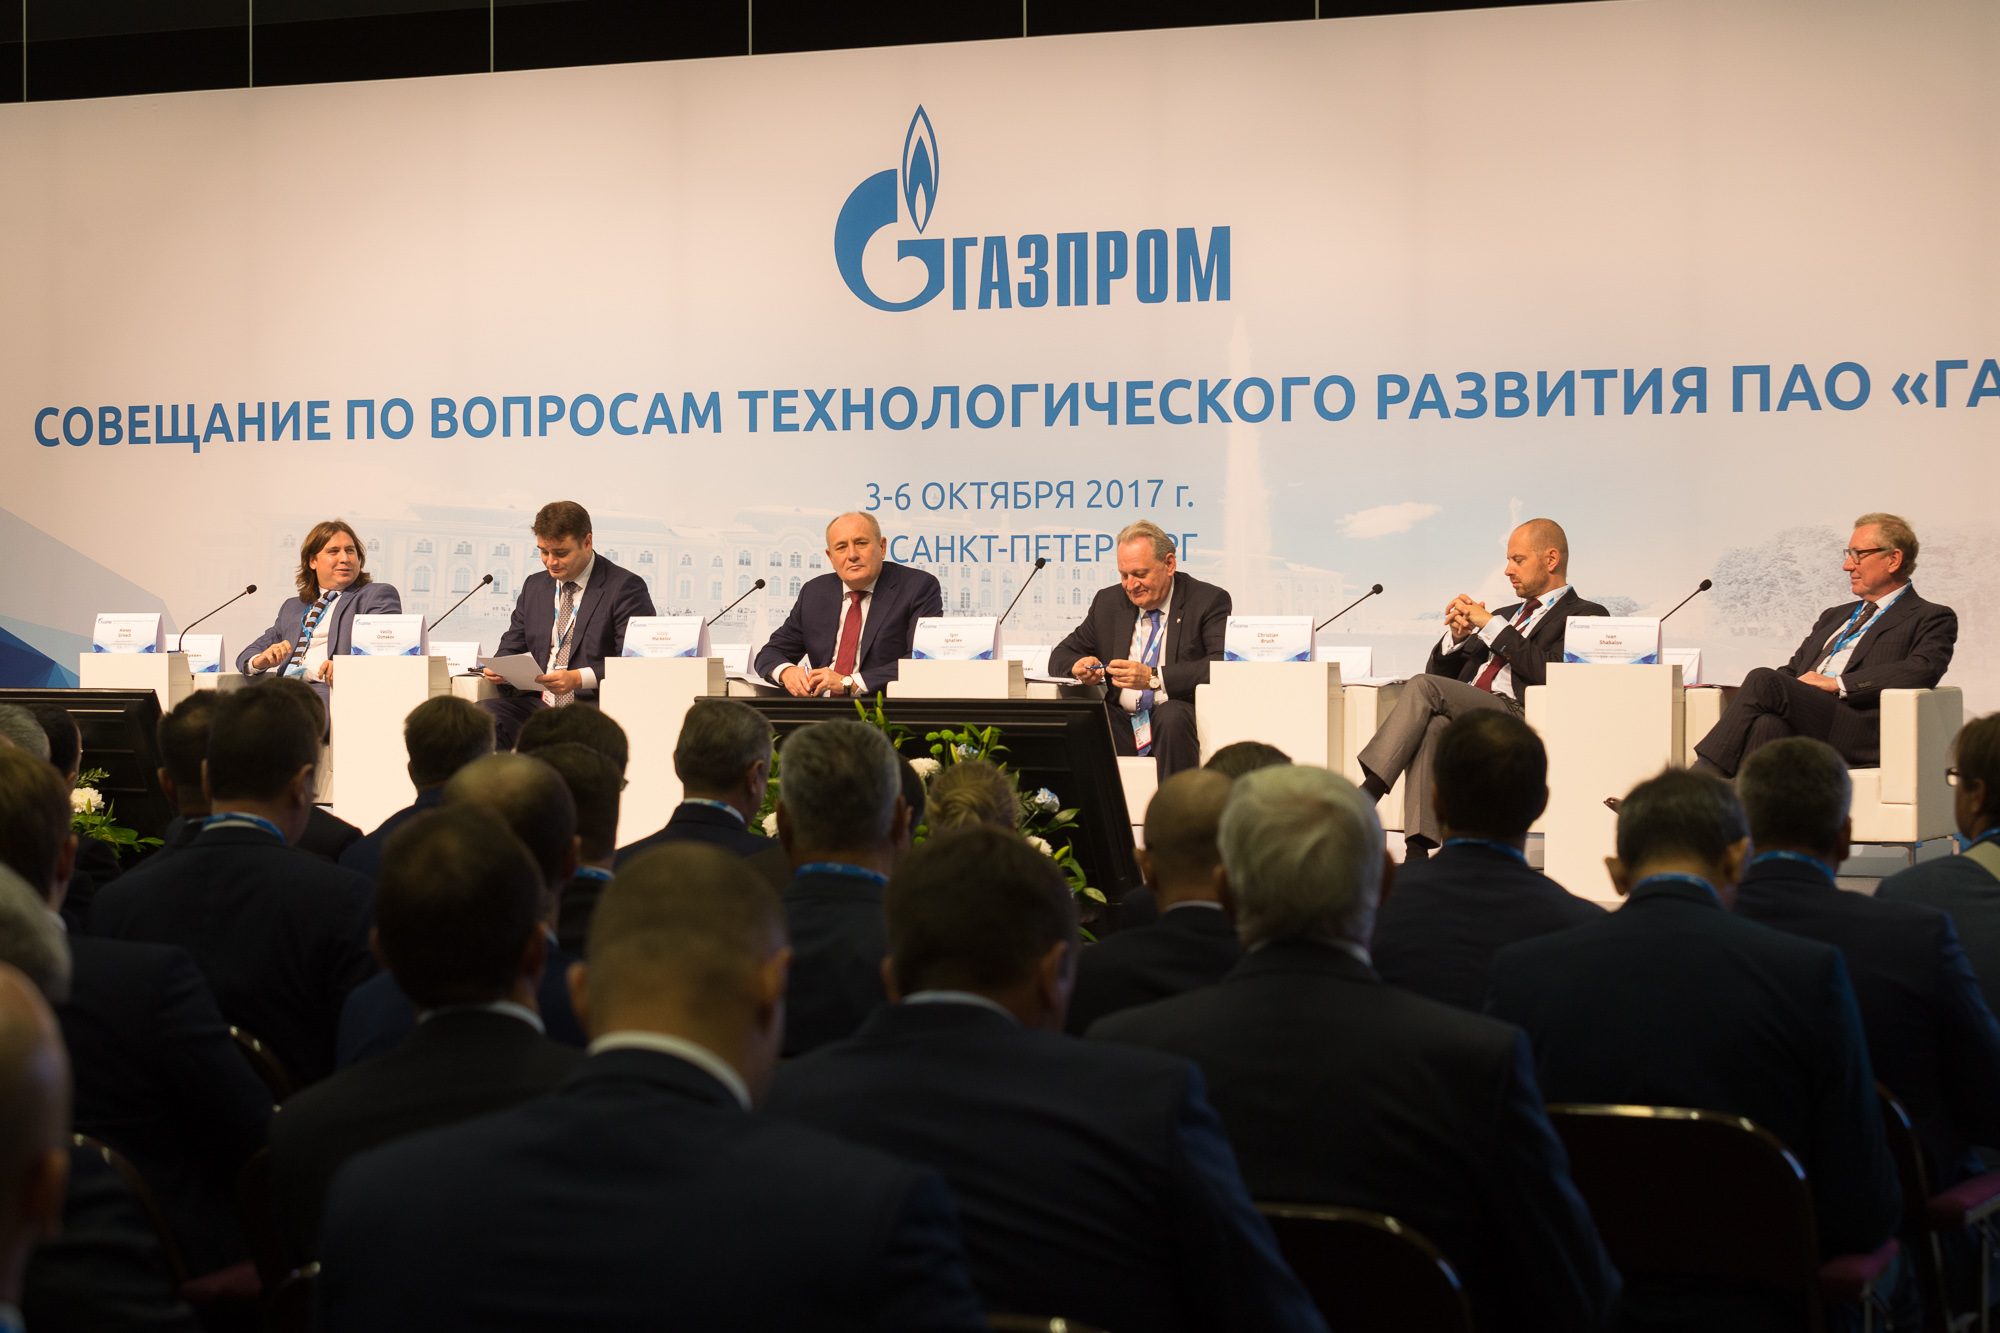 a business overview of the gas company gazprom It bankrolled many of the kremlin's pet projects and the high-rolling lifestyle of a generation of company executives gazprom says gas business.